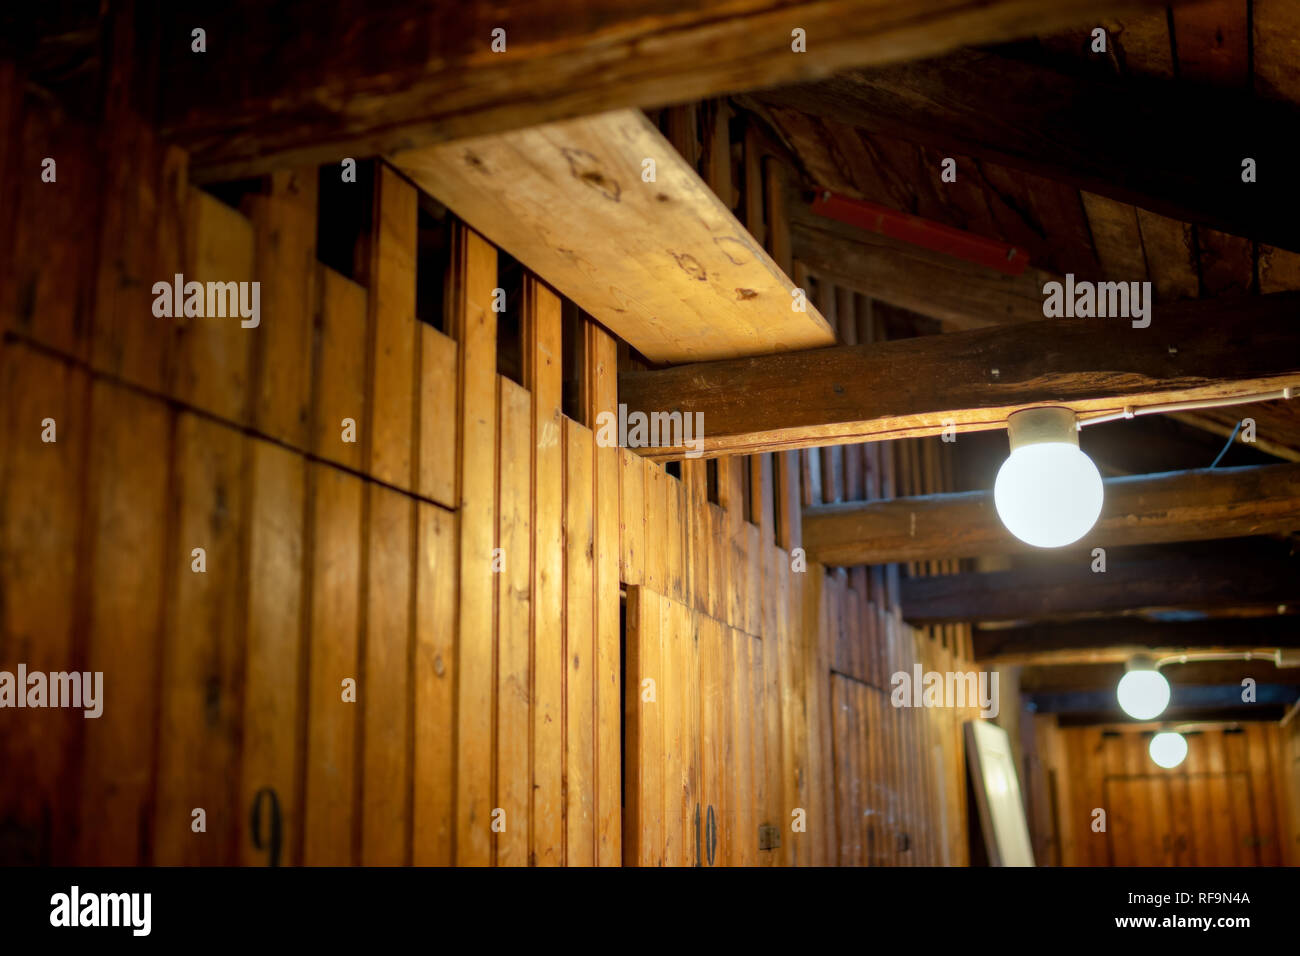 attic in old apartment building with storage space for tenants - Stock Image